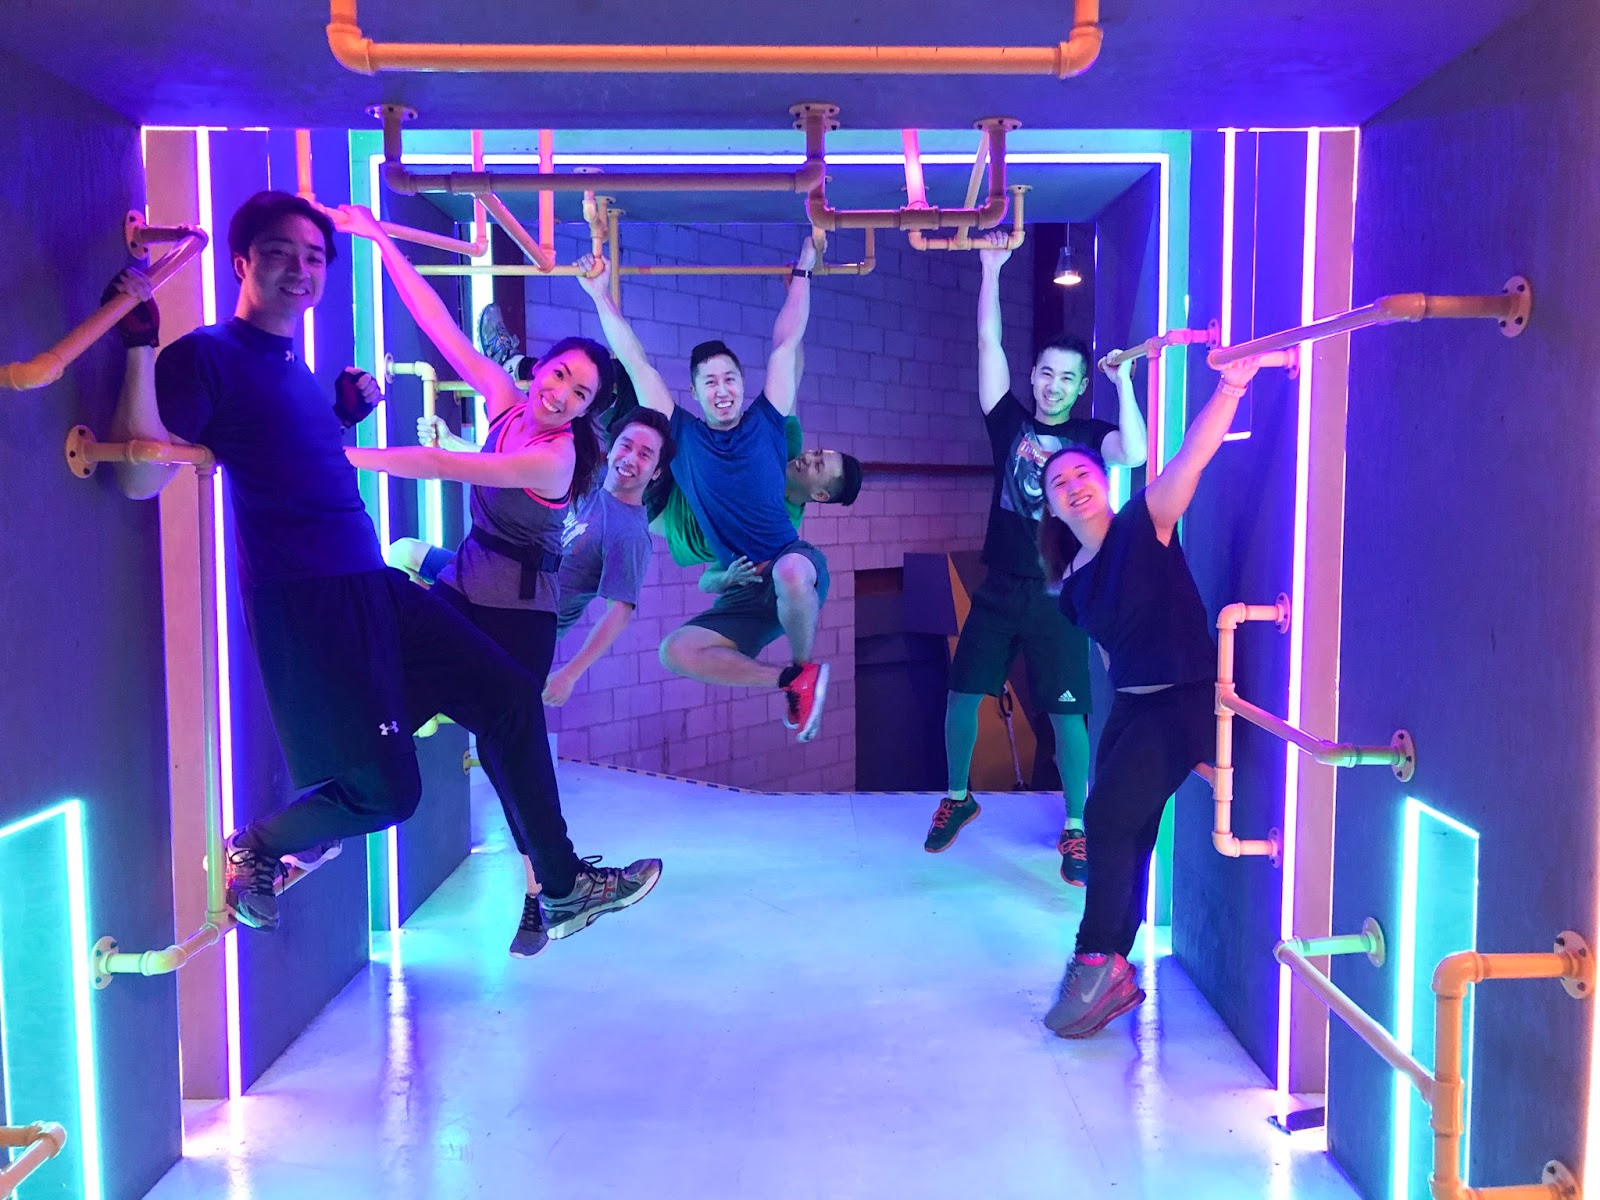 10 Fun Indoor Activities to do with Your BFFs in Winter - Indoor Obstacle Course Pursuit OCR